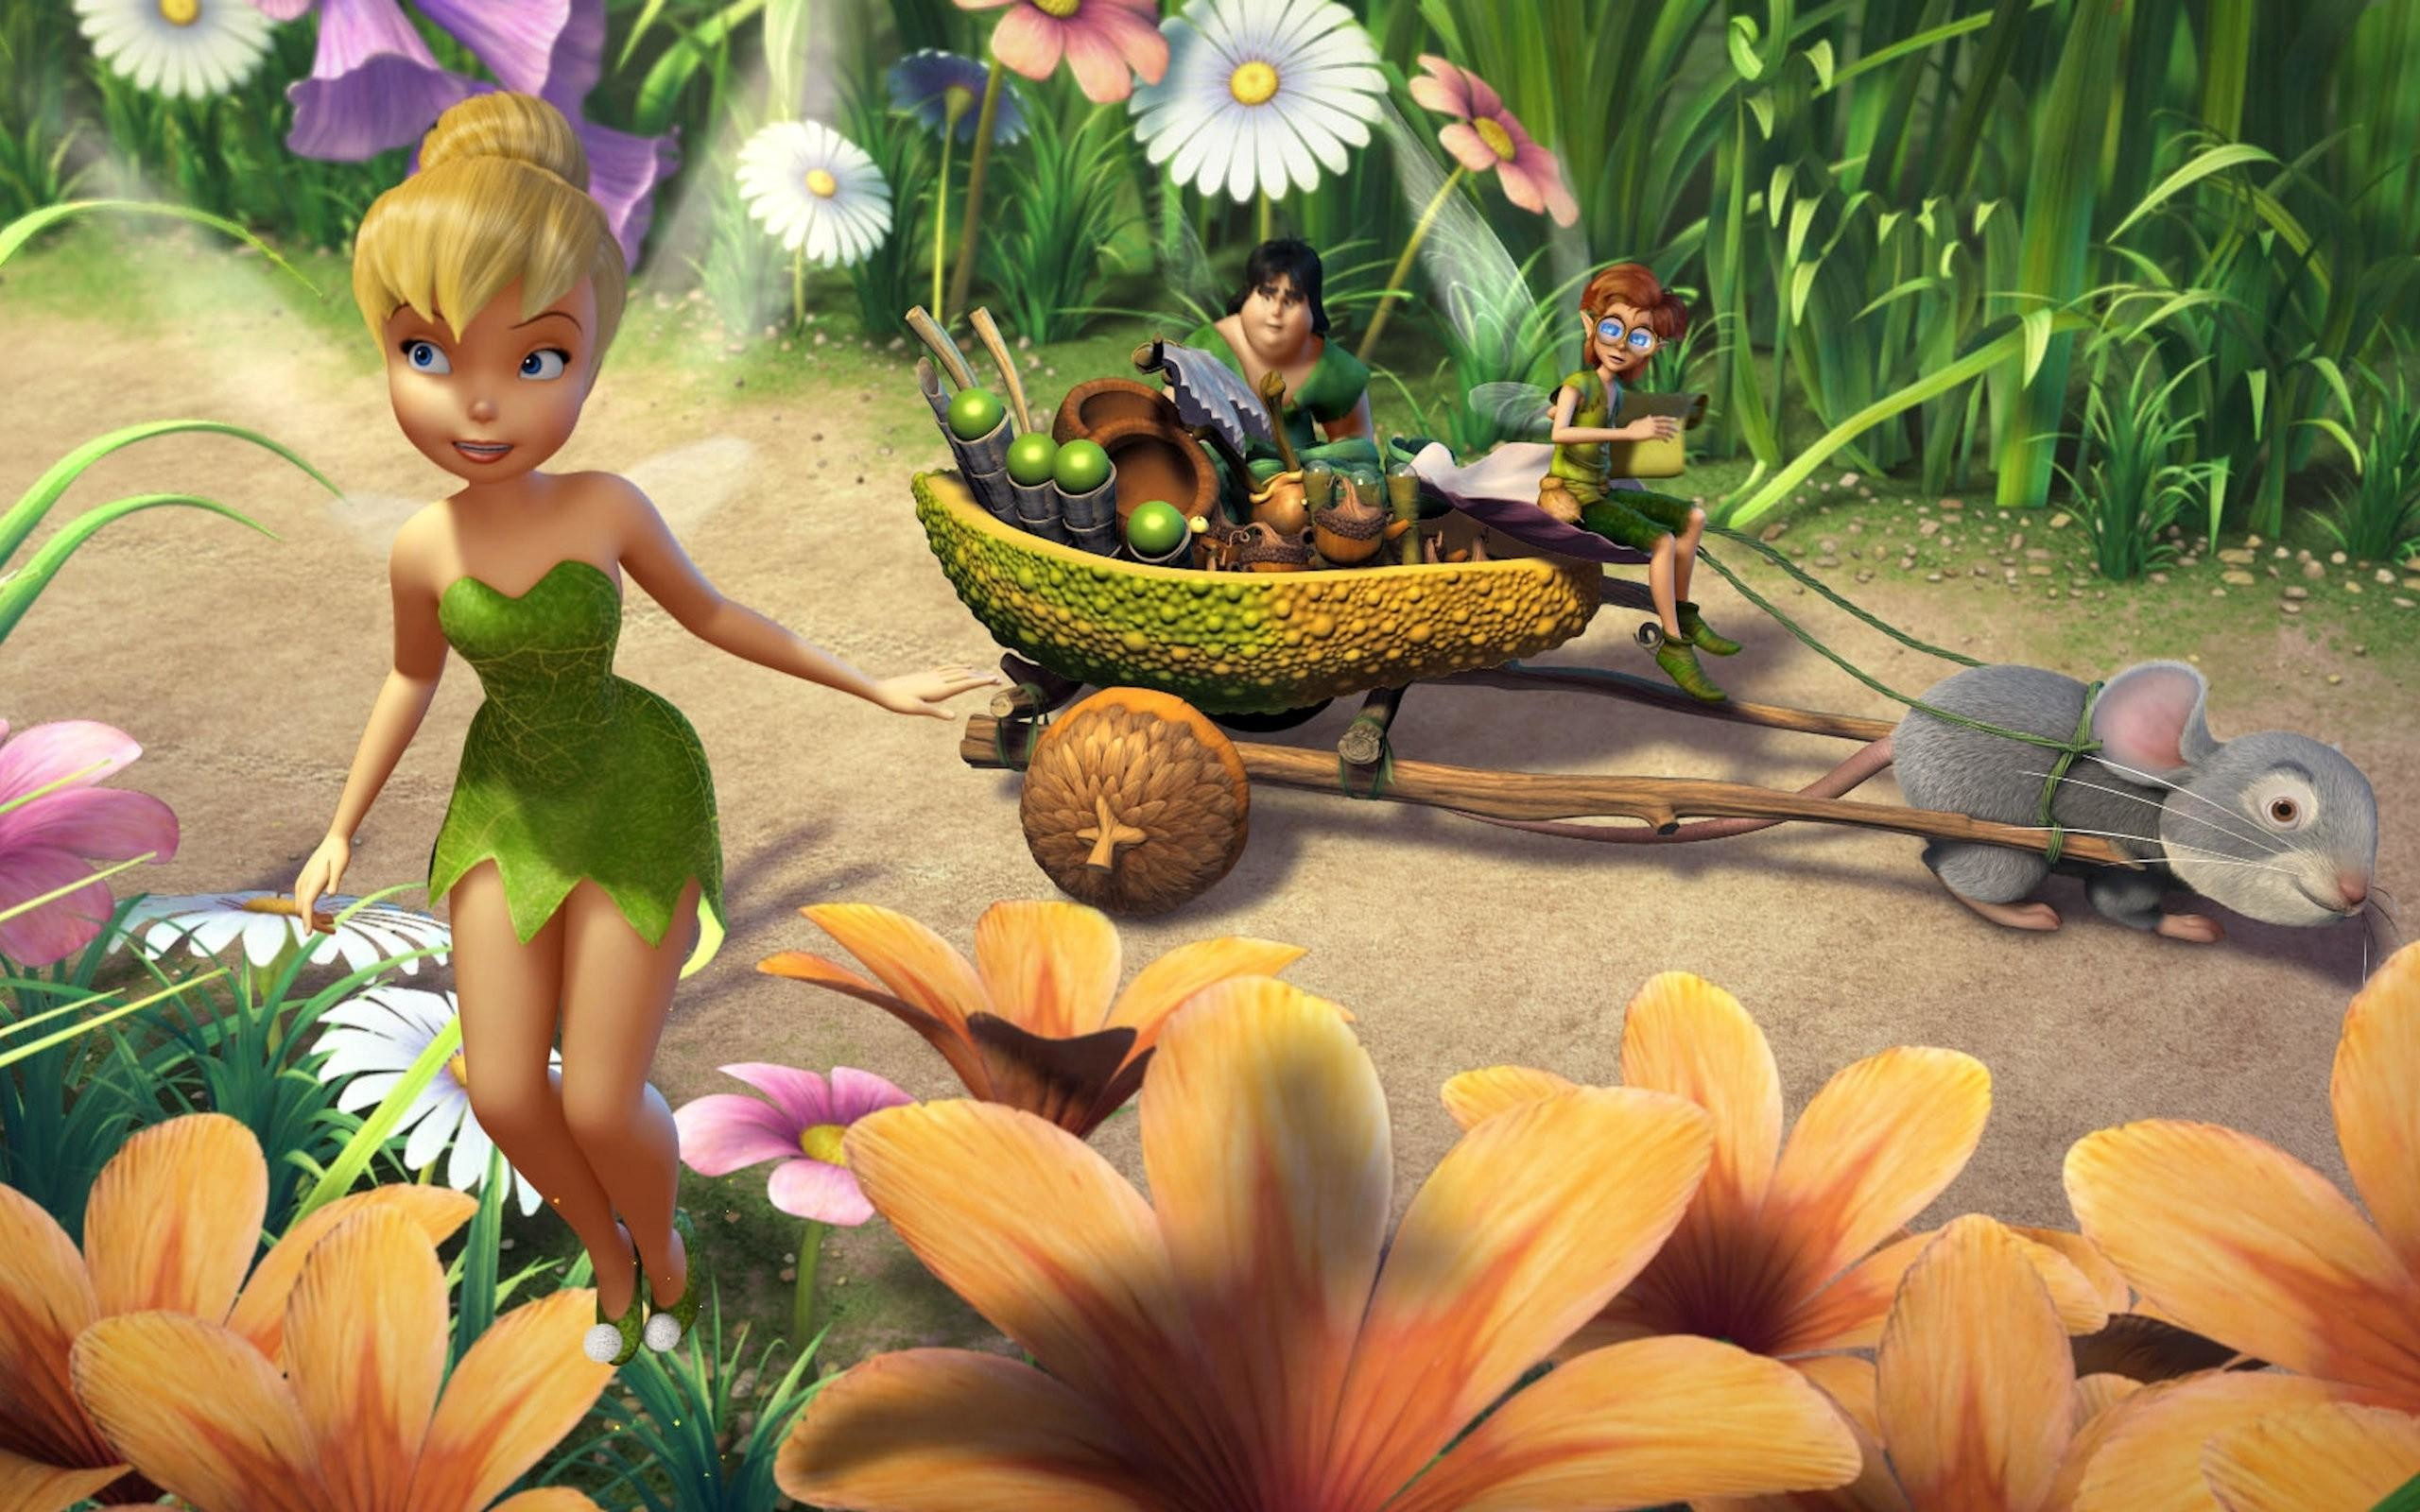 2560x1600 Download free tinkerbell wallpapers for your mobile phone most